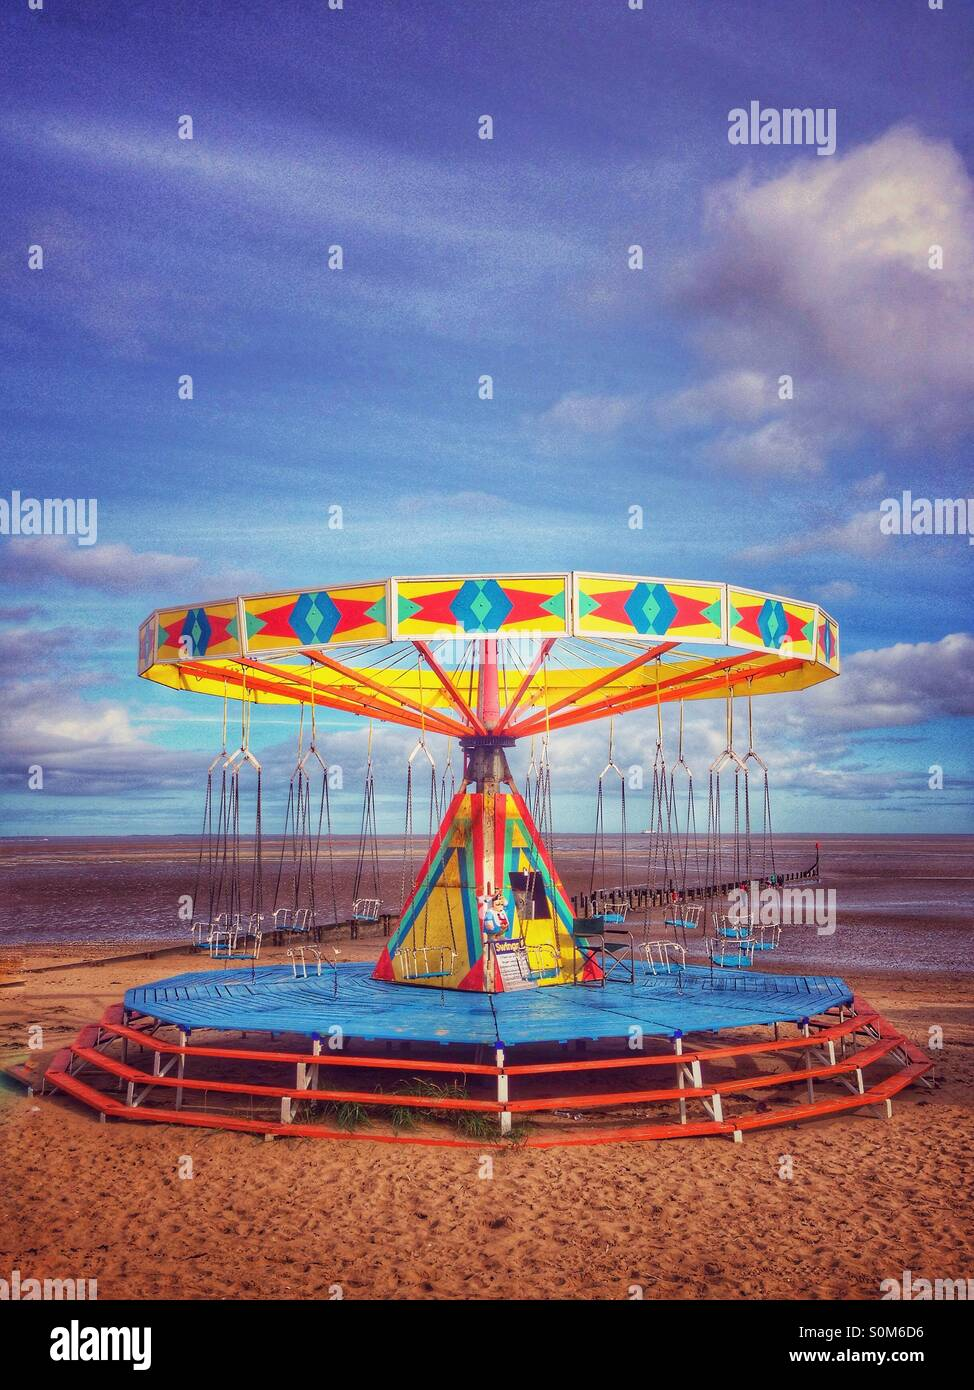 End of season beach amusements - Stock Image